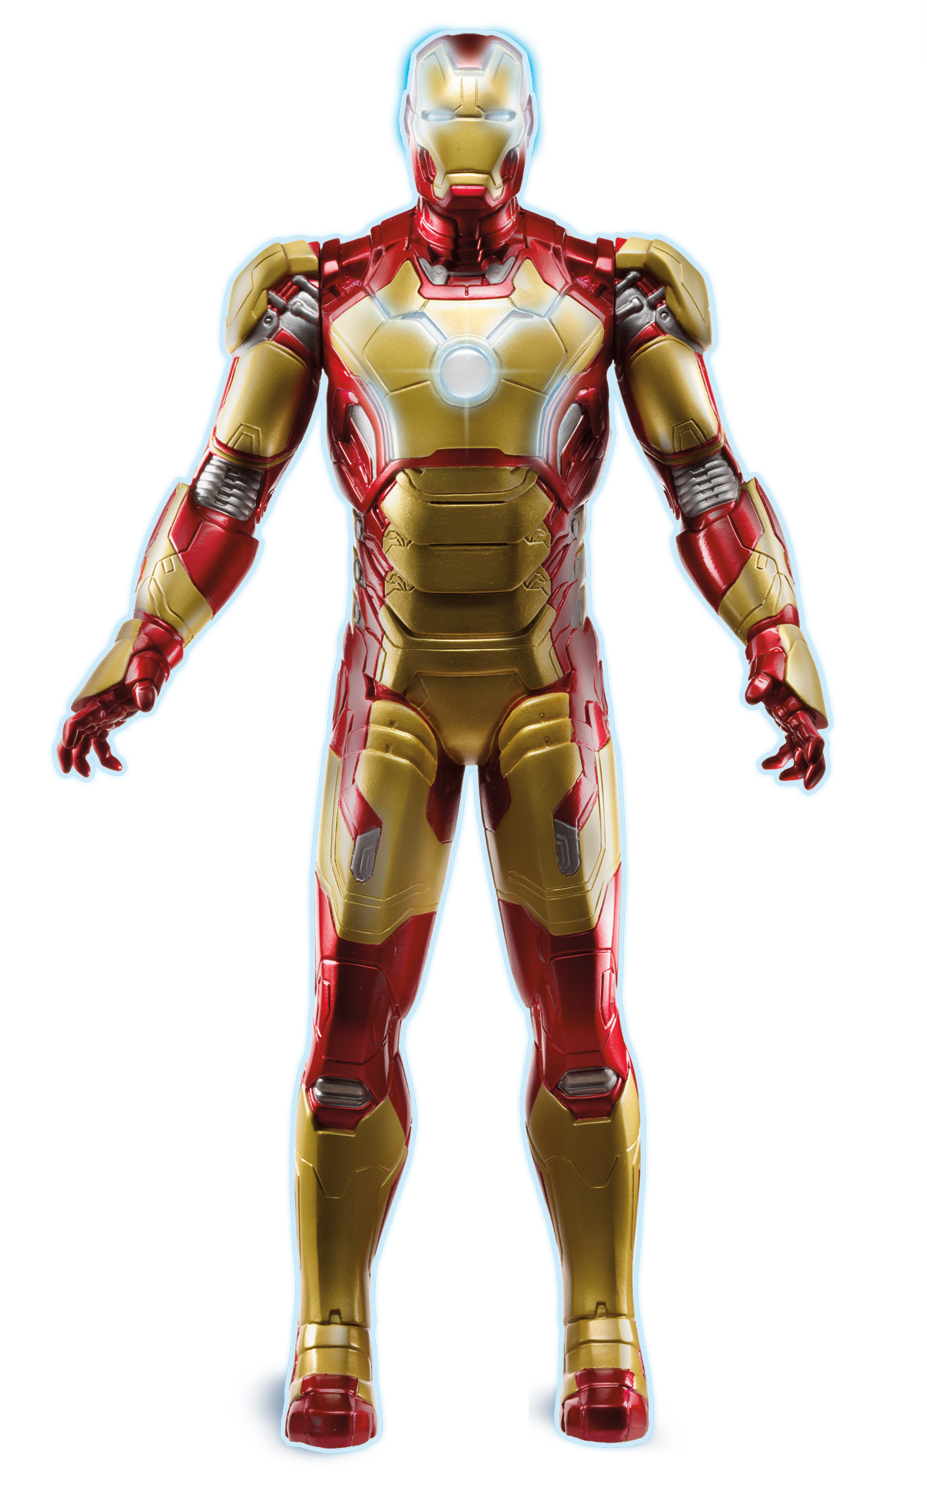 Toy Images for IRON MAN 3, TRANSFORMERS, and Kre.